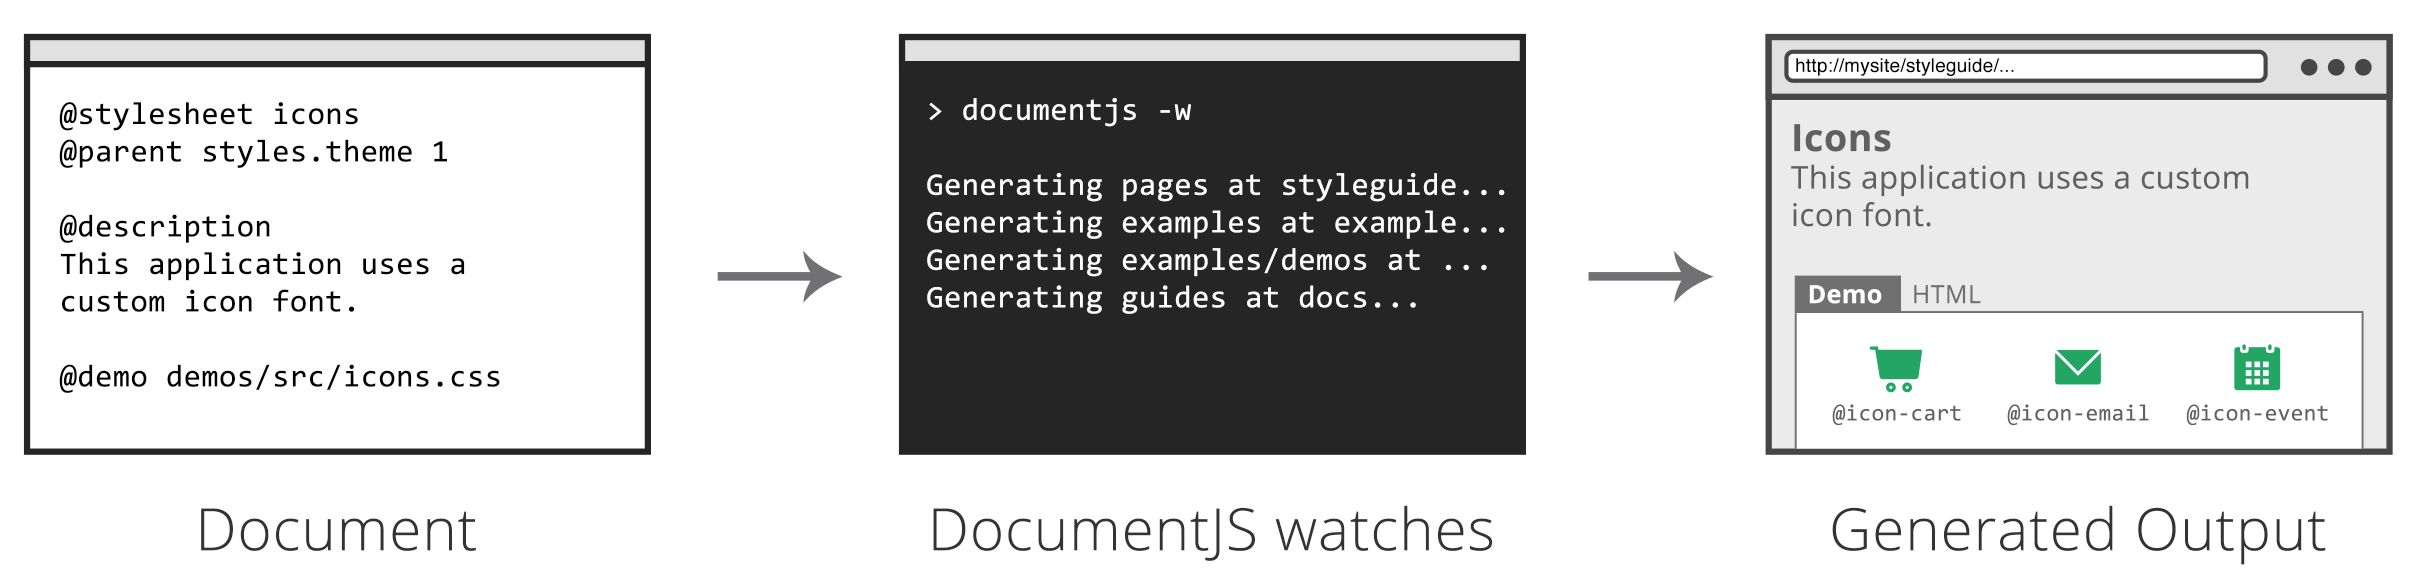 live style guide flow